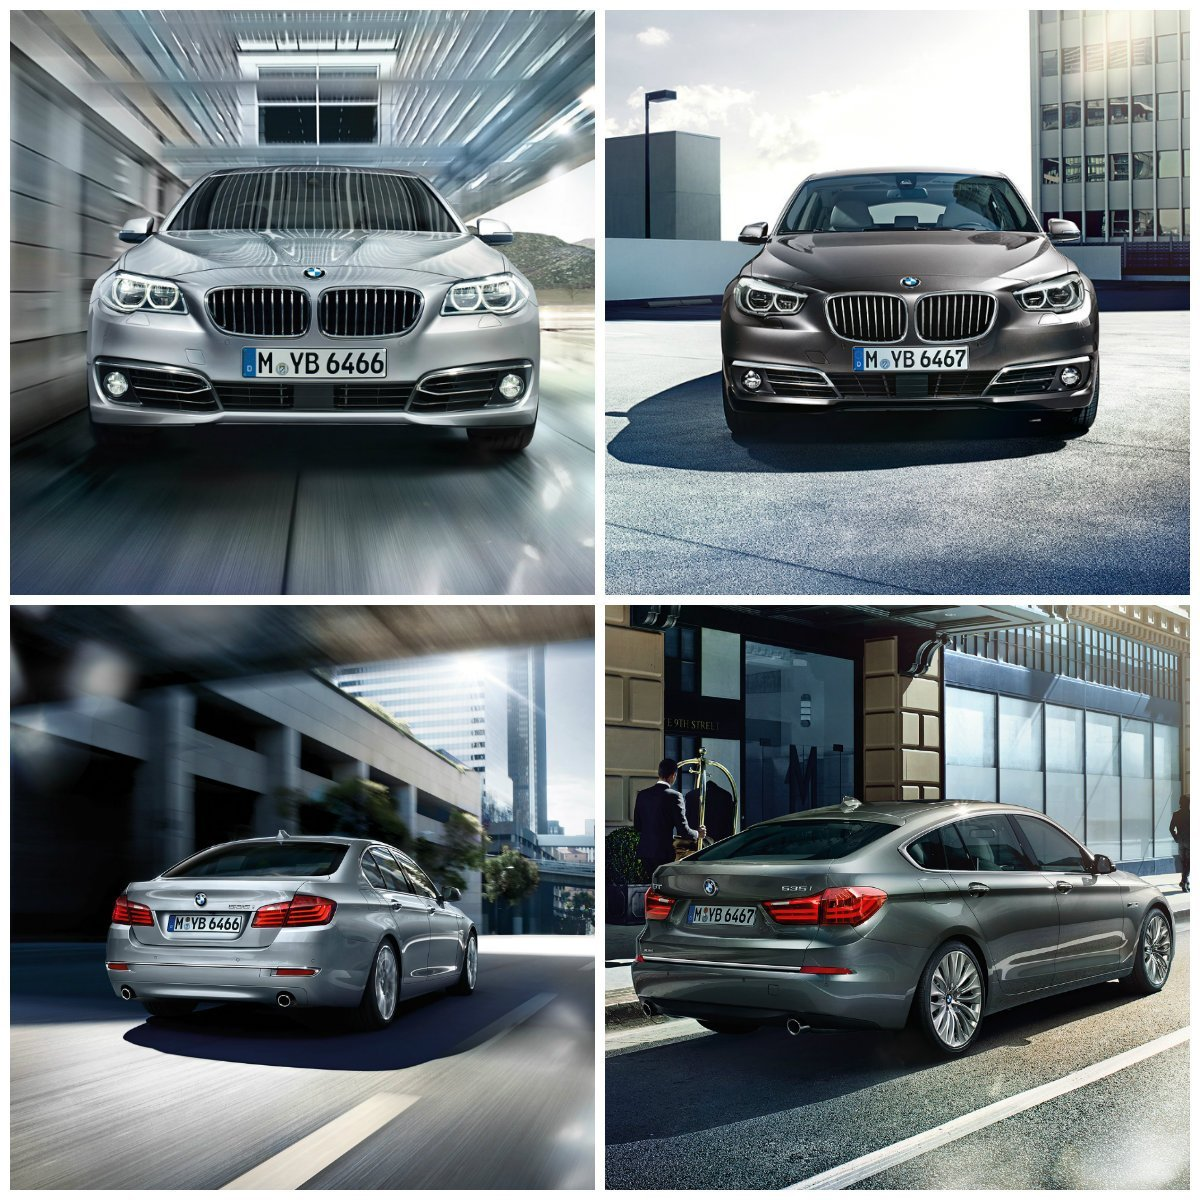 Latest 2014 Bmw 5 Series Review Prices Specs Free Download